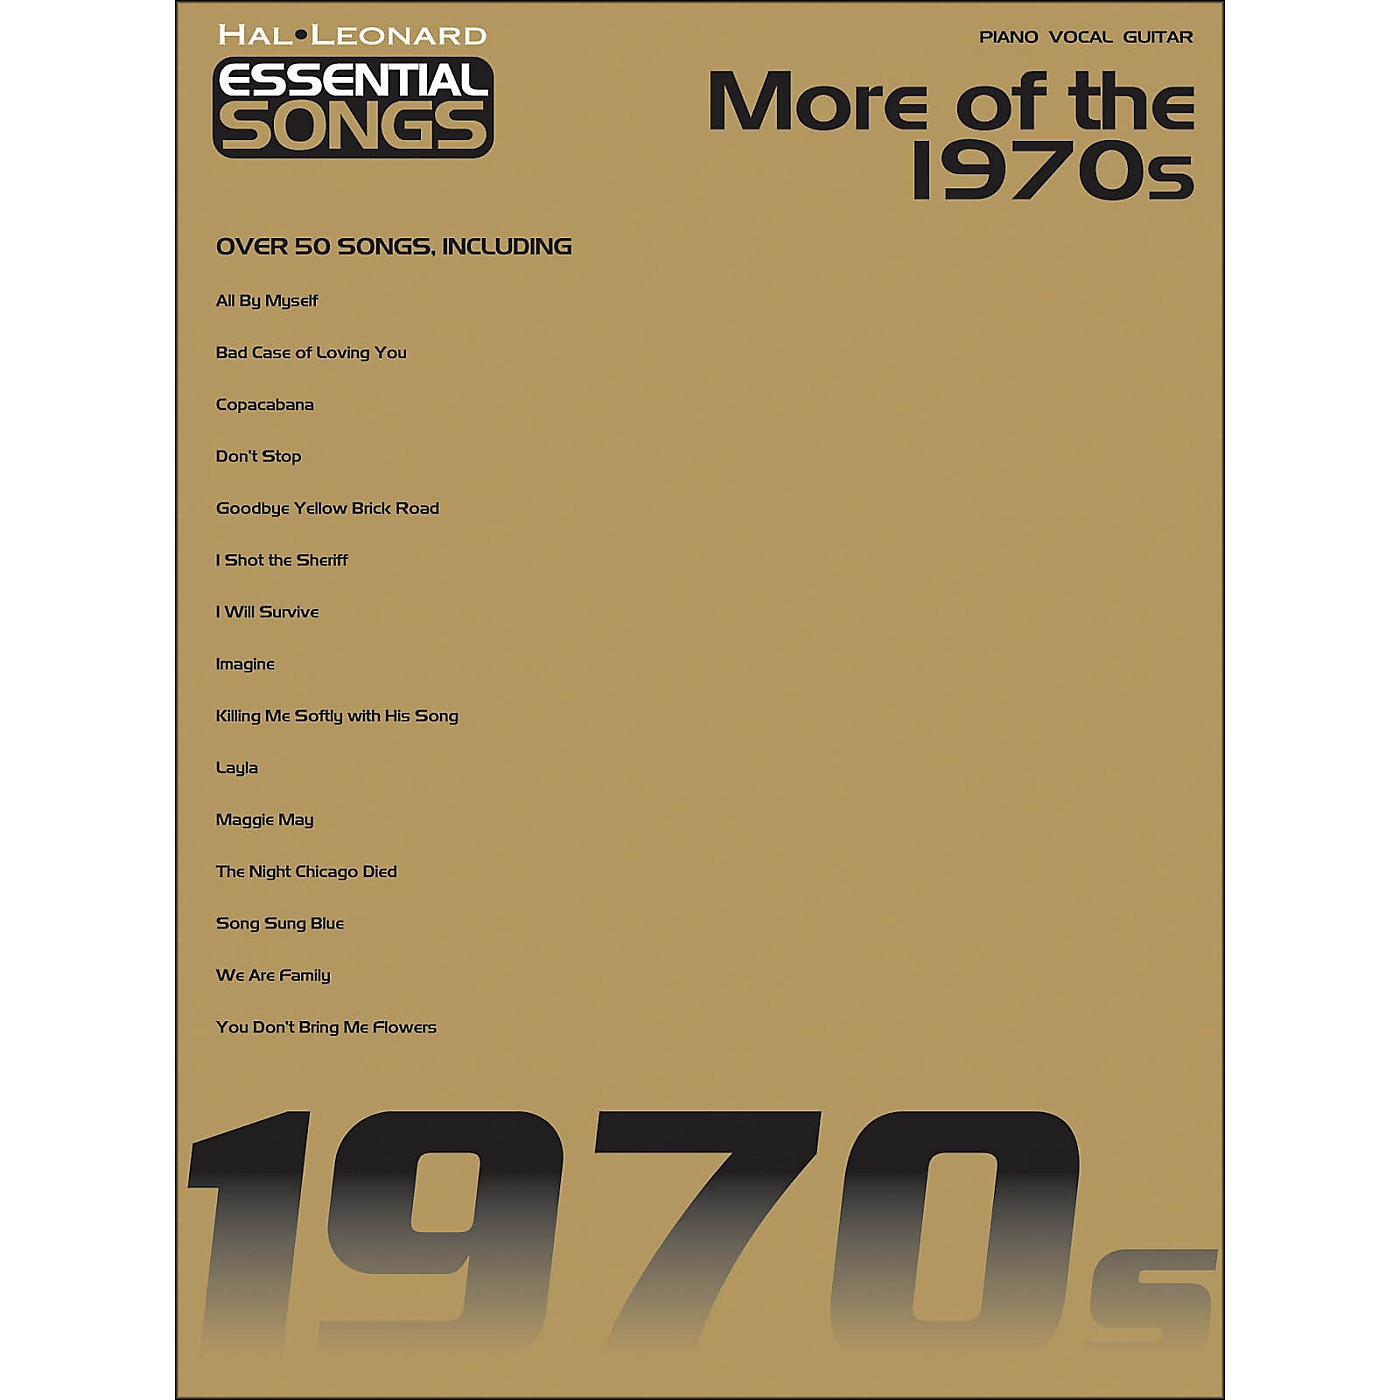 Hal Leonard More Of The 1970s - Essential Songs arranged for piano, vocal, and guitar (P/V/G) thumbnail